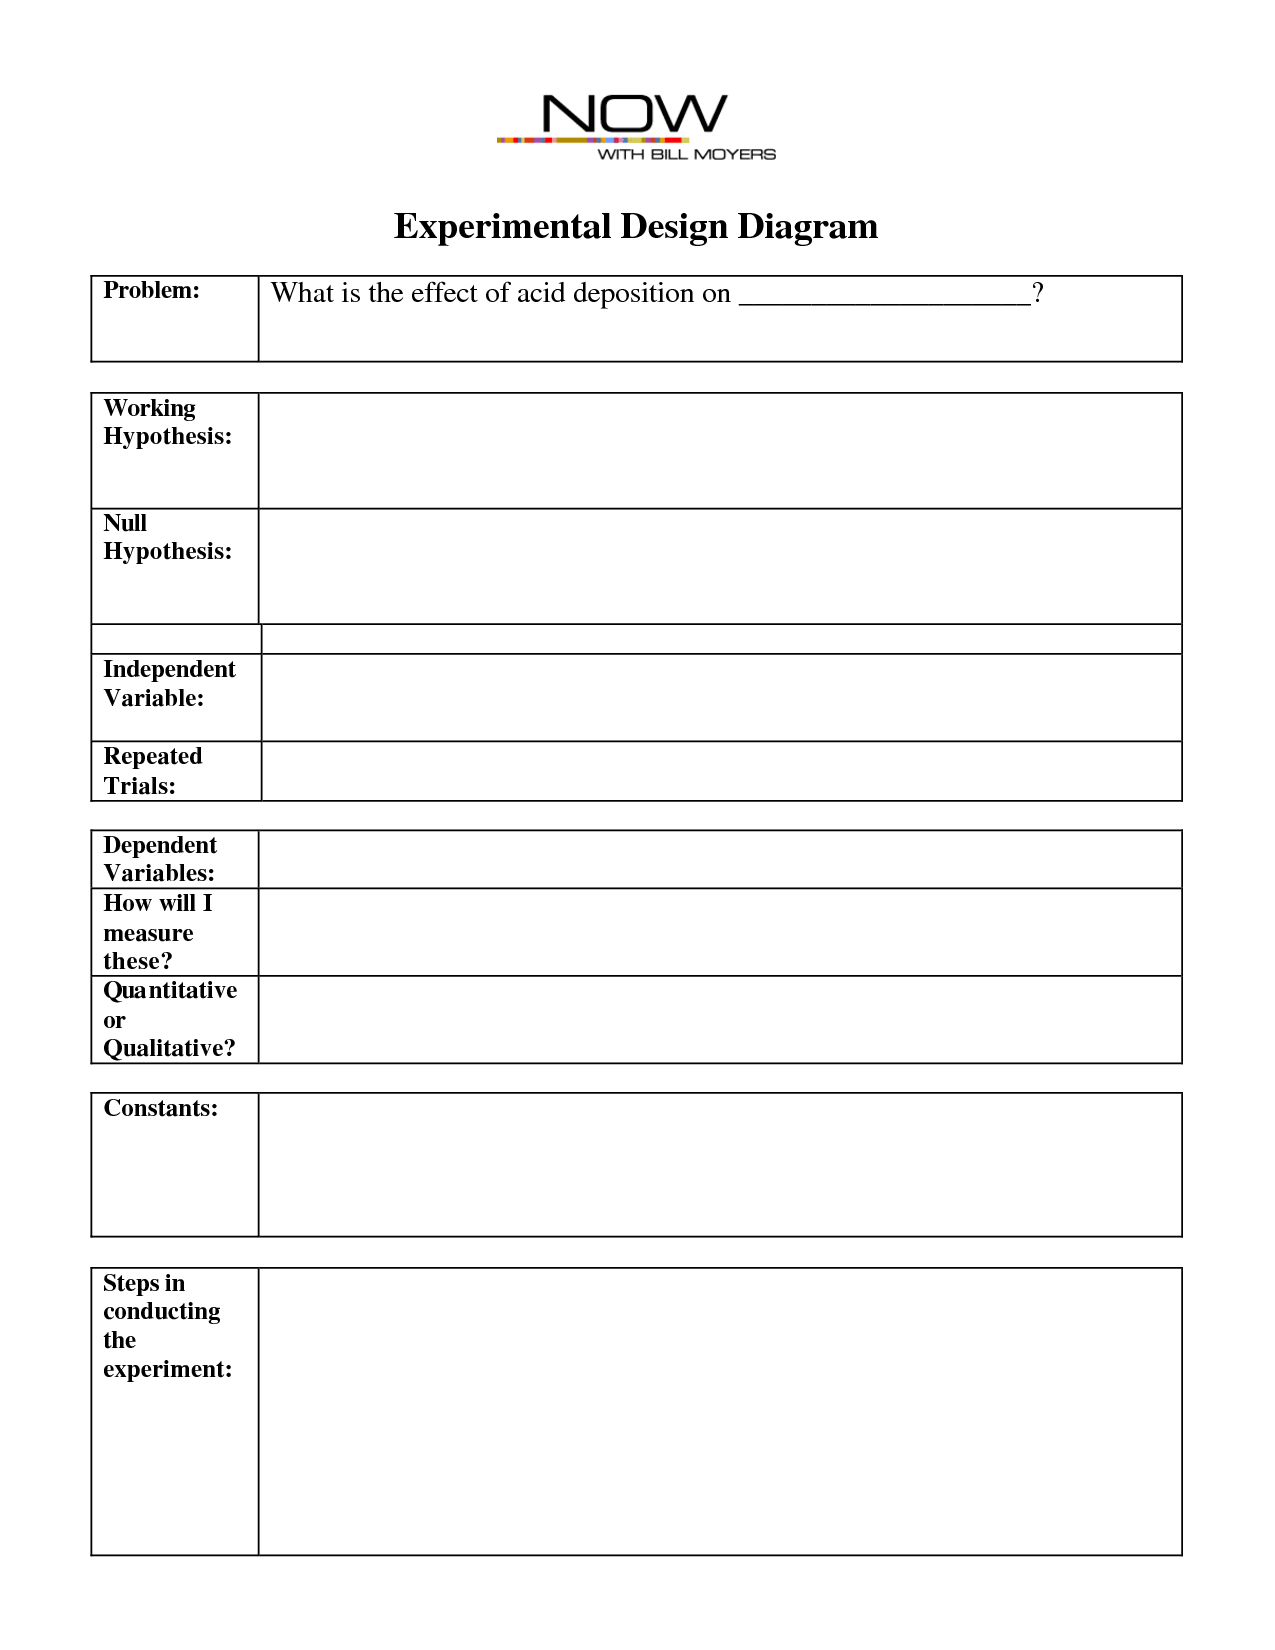 Experimental Design Worksheet Answers